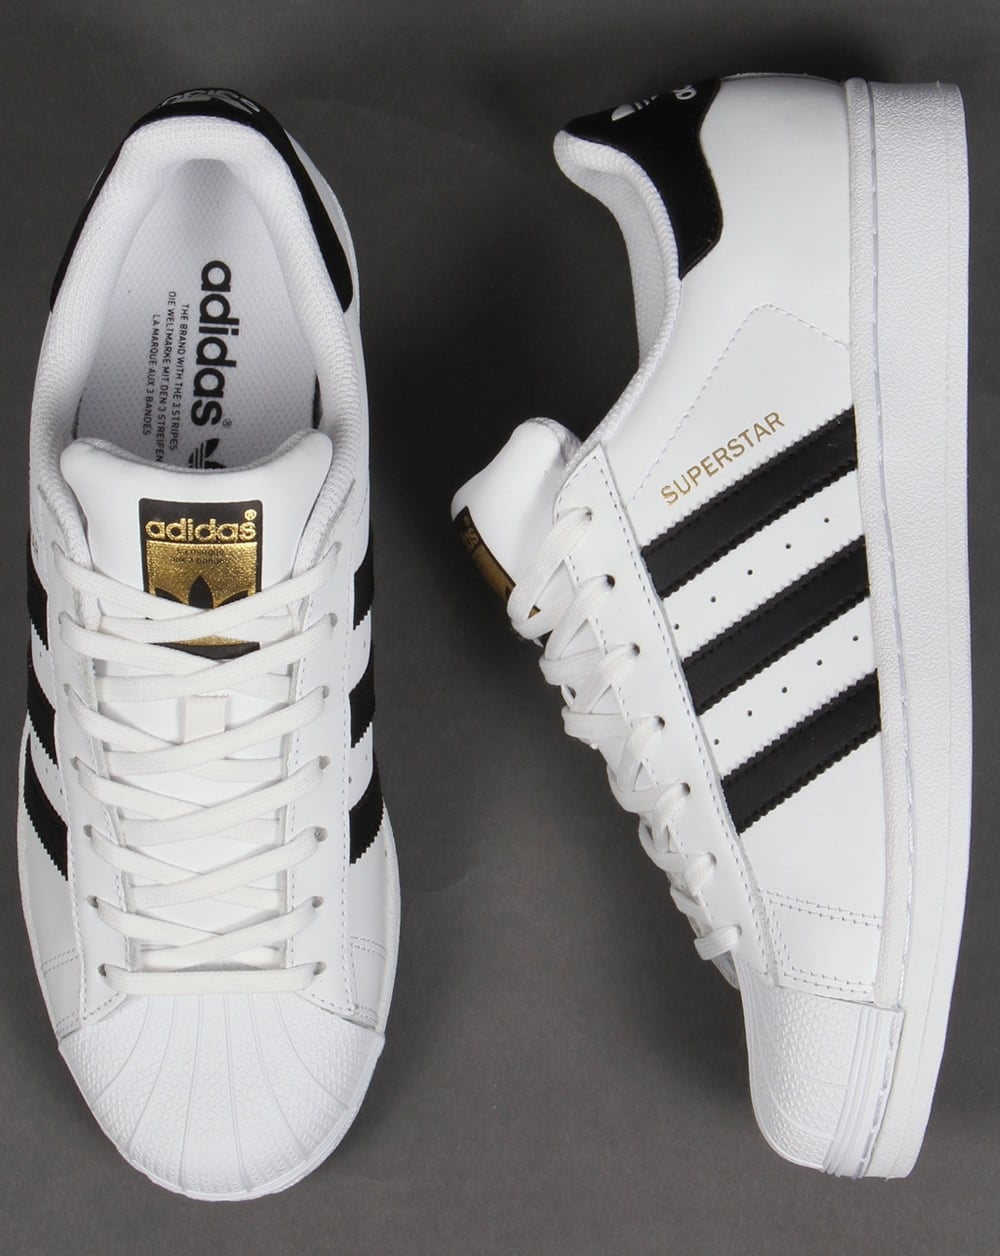 adidas superstars 2 adidas superstar 80s white black - Maderasoft.com